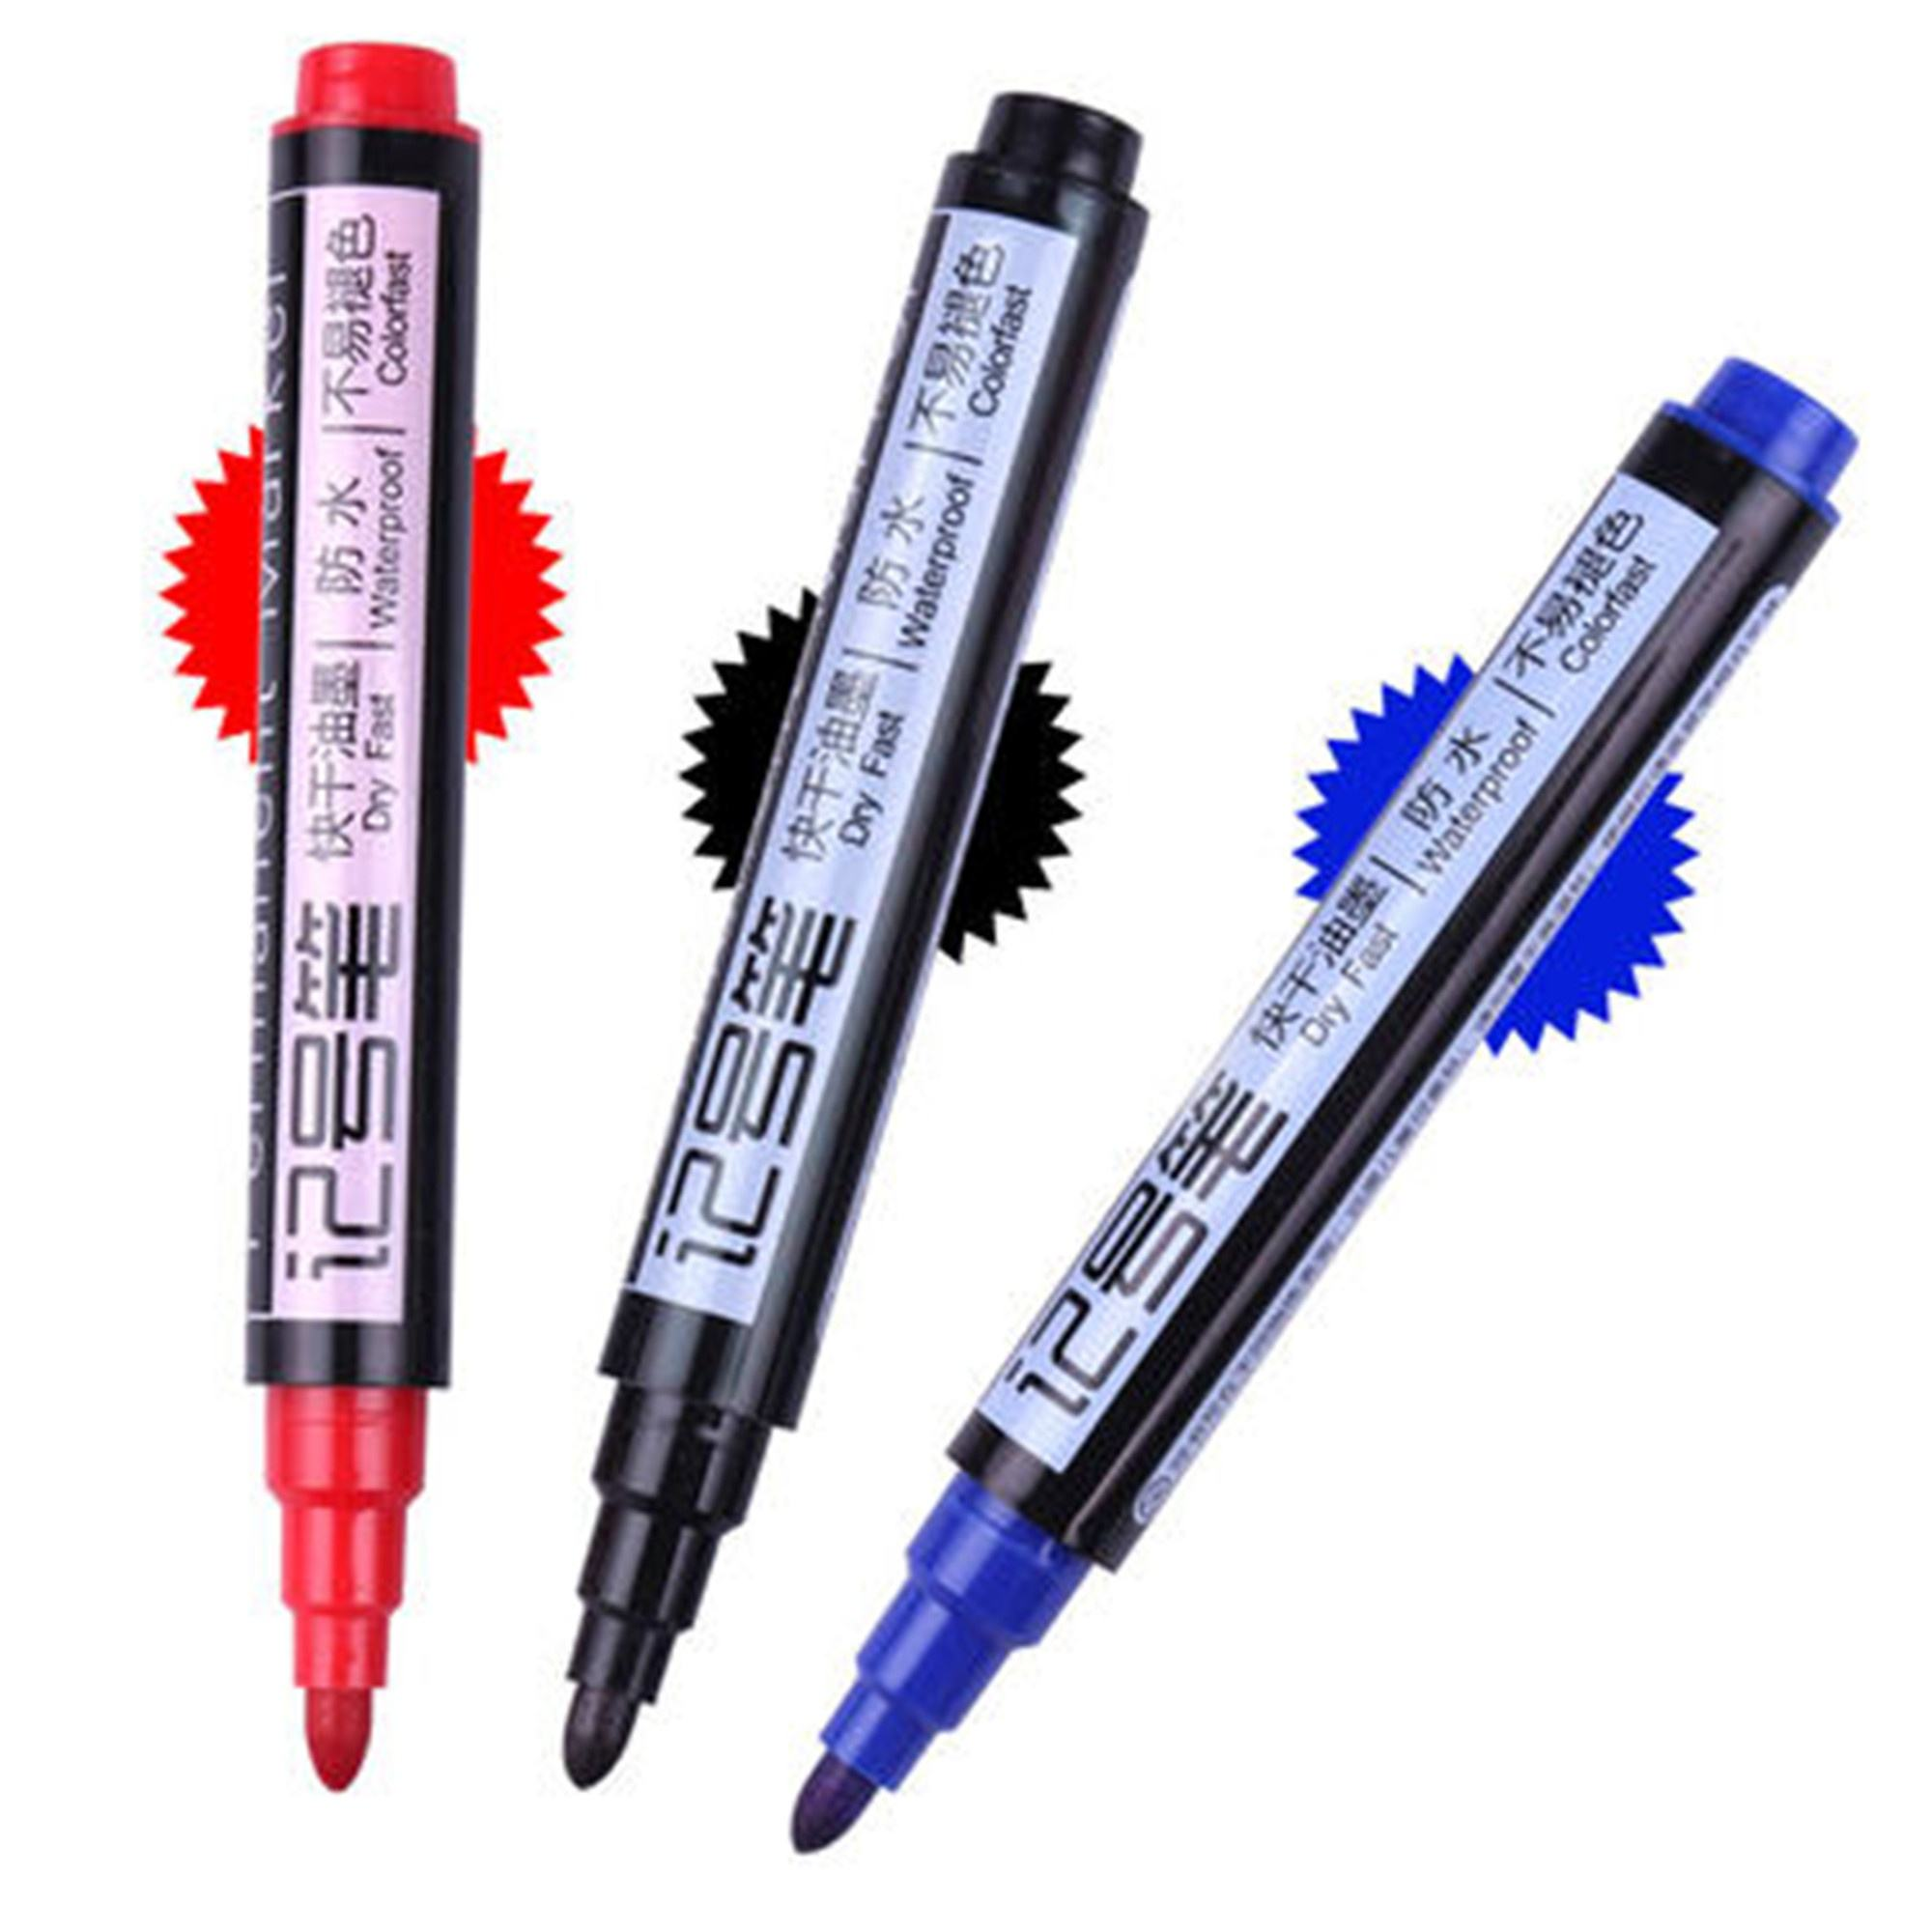 Permanent oil-ink Marker pens for school stationery & office (HX-6821) three choice for colors